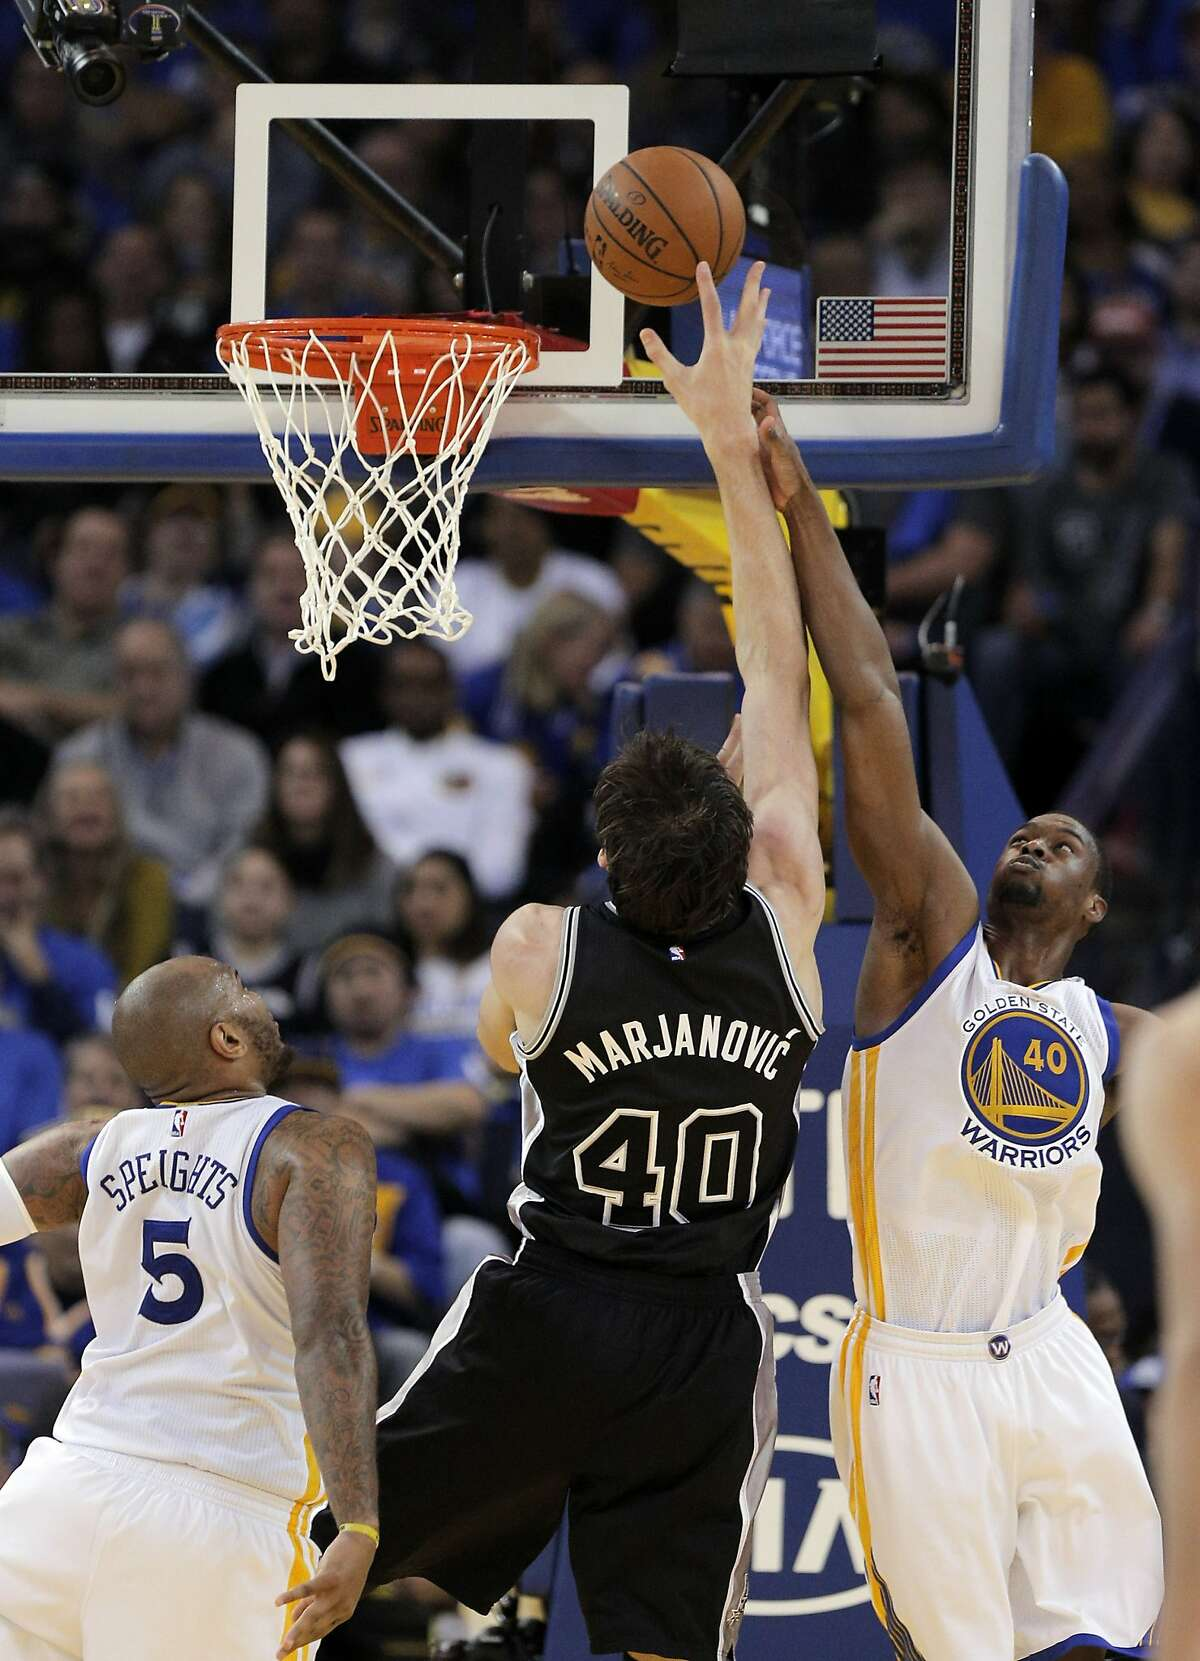 Harrison Barnes (40) and Marreese Speights (5) defend againt a shot by Boban Marjanovic (40) during the second half of the Golden State Warriors game against the San Antonio Spurs at Oracle Arena in Oakland, Calif., on Monday, January 25, 2016.